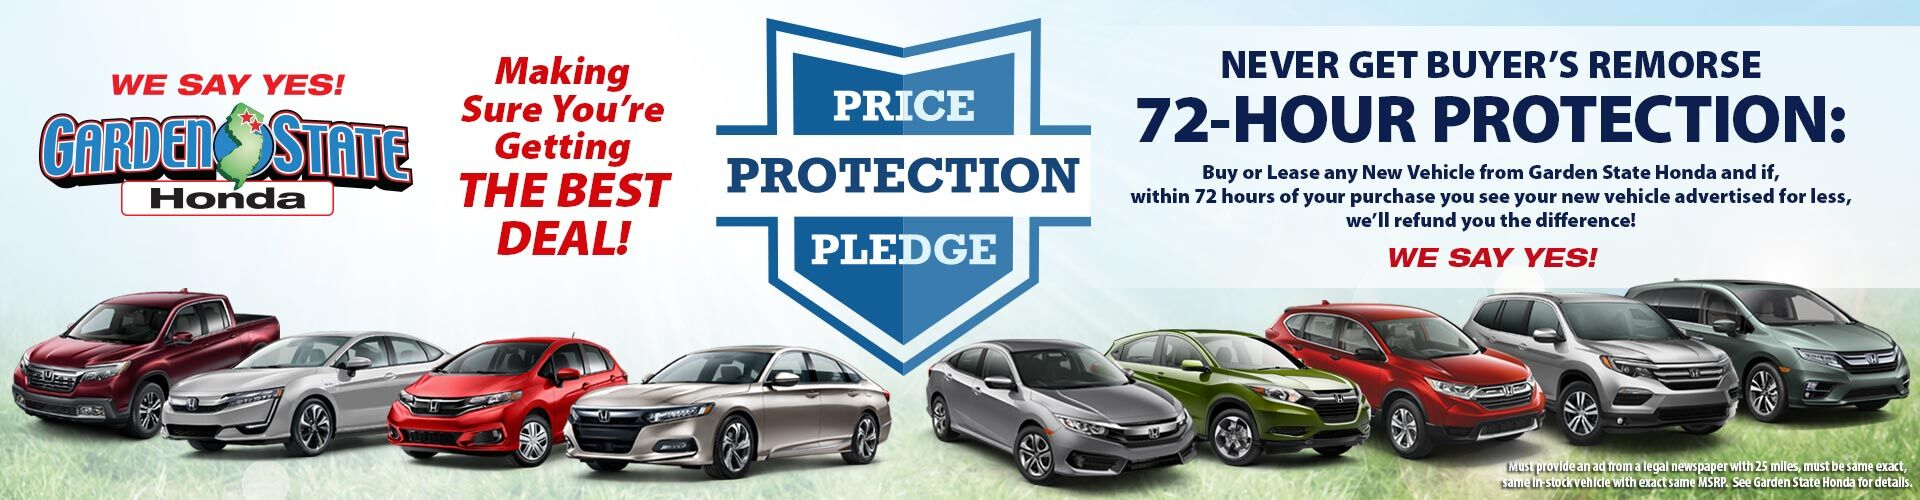 Price Pledge Promise